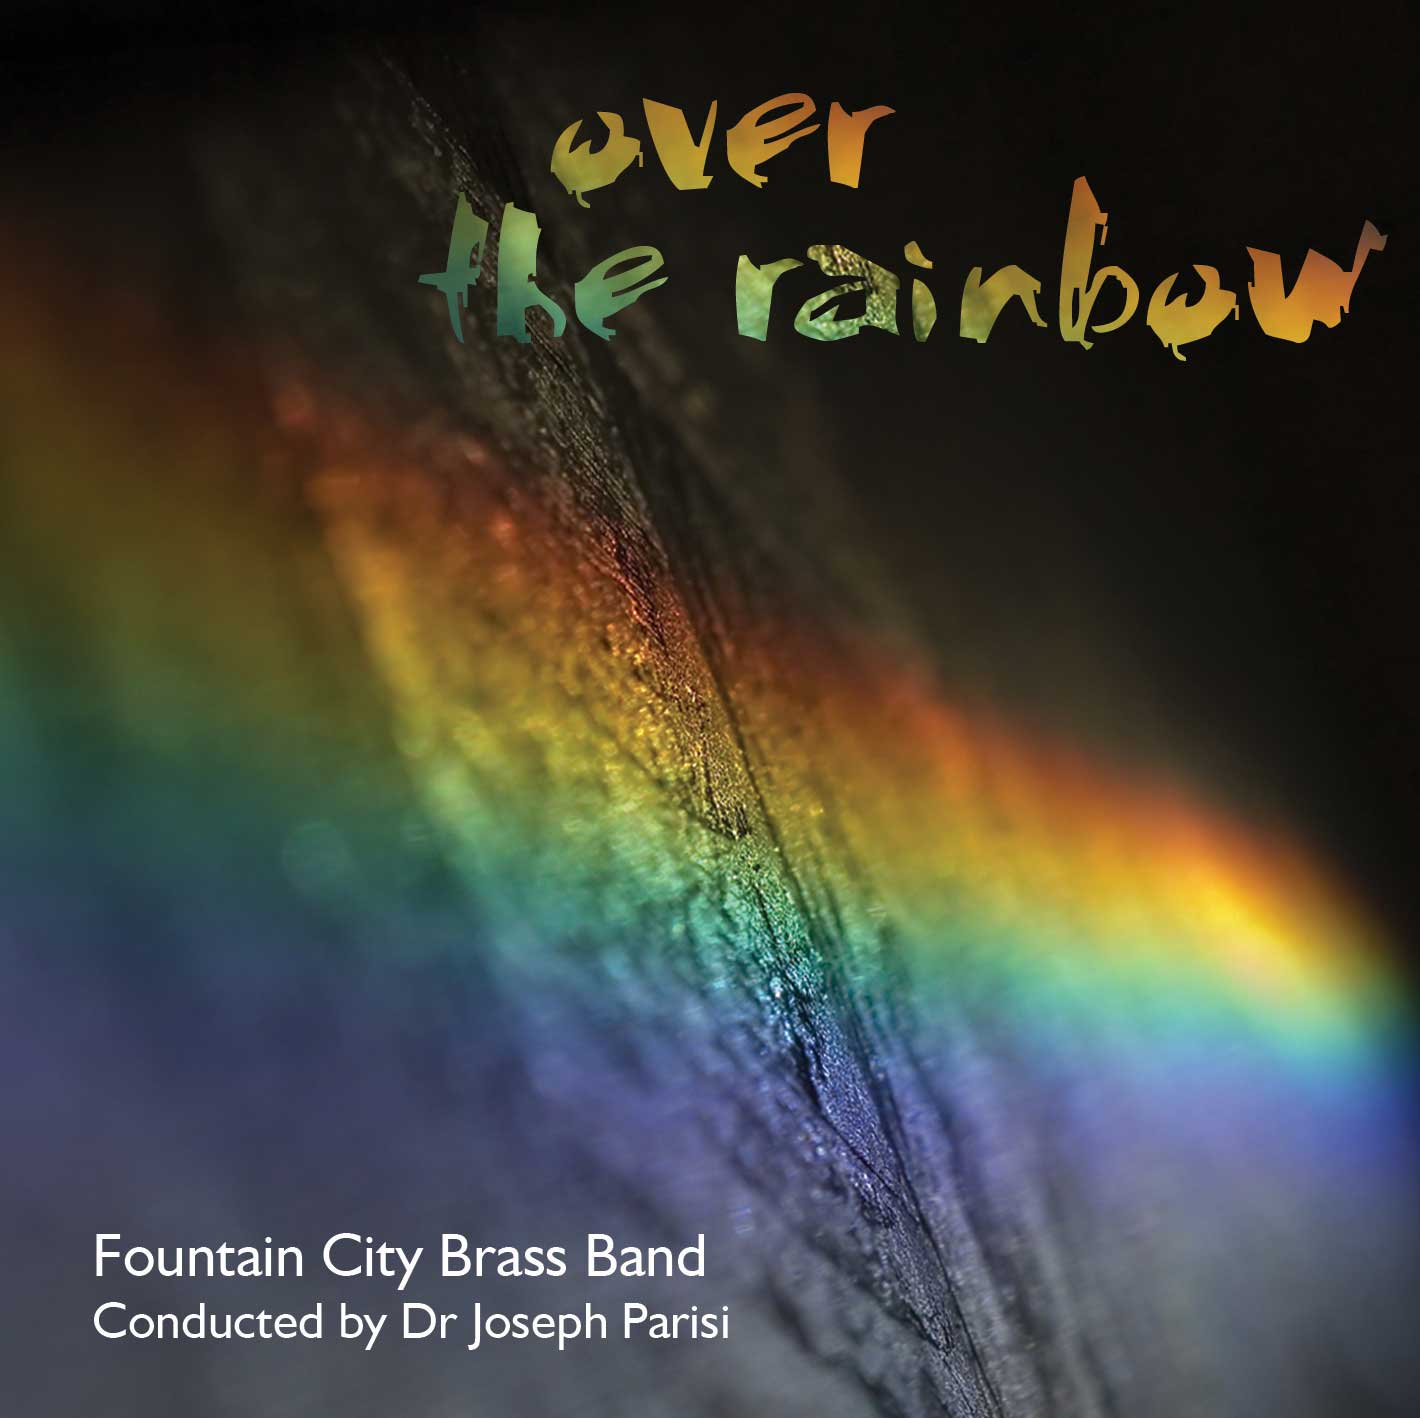 Fountain City Brass Band: Over the Rainbow